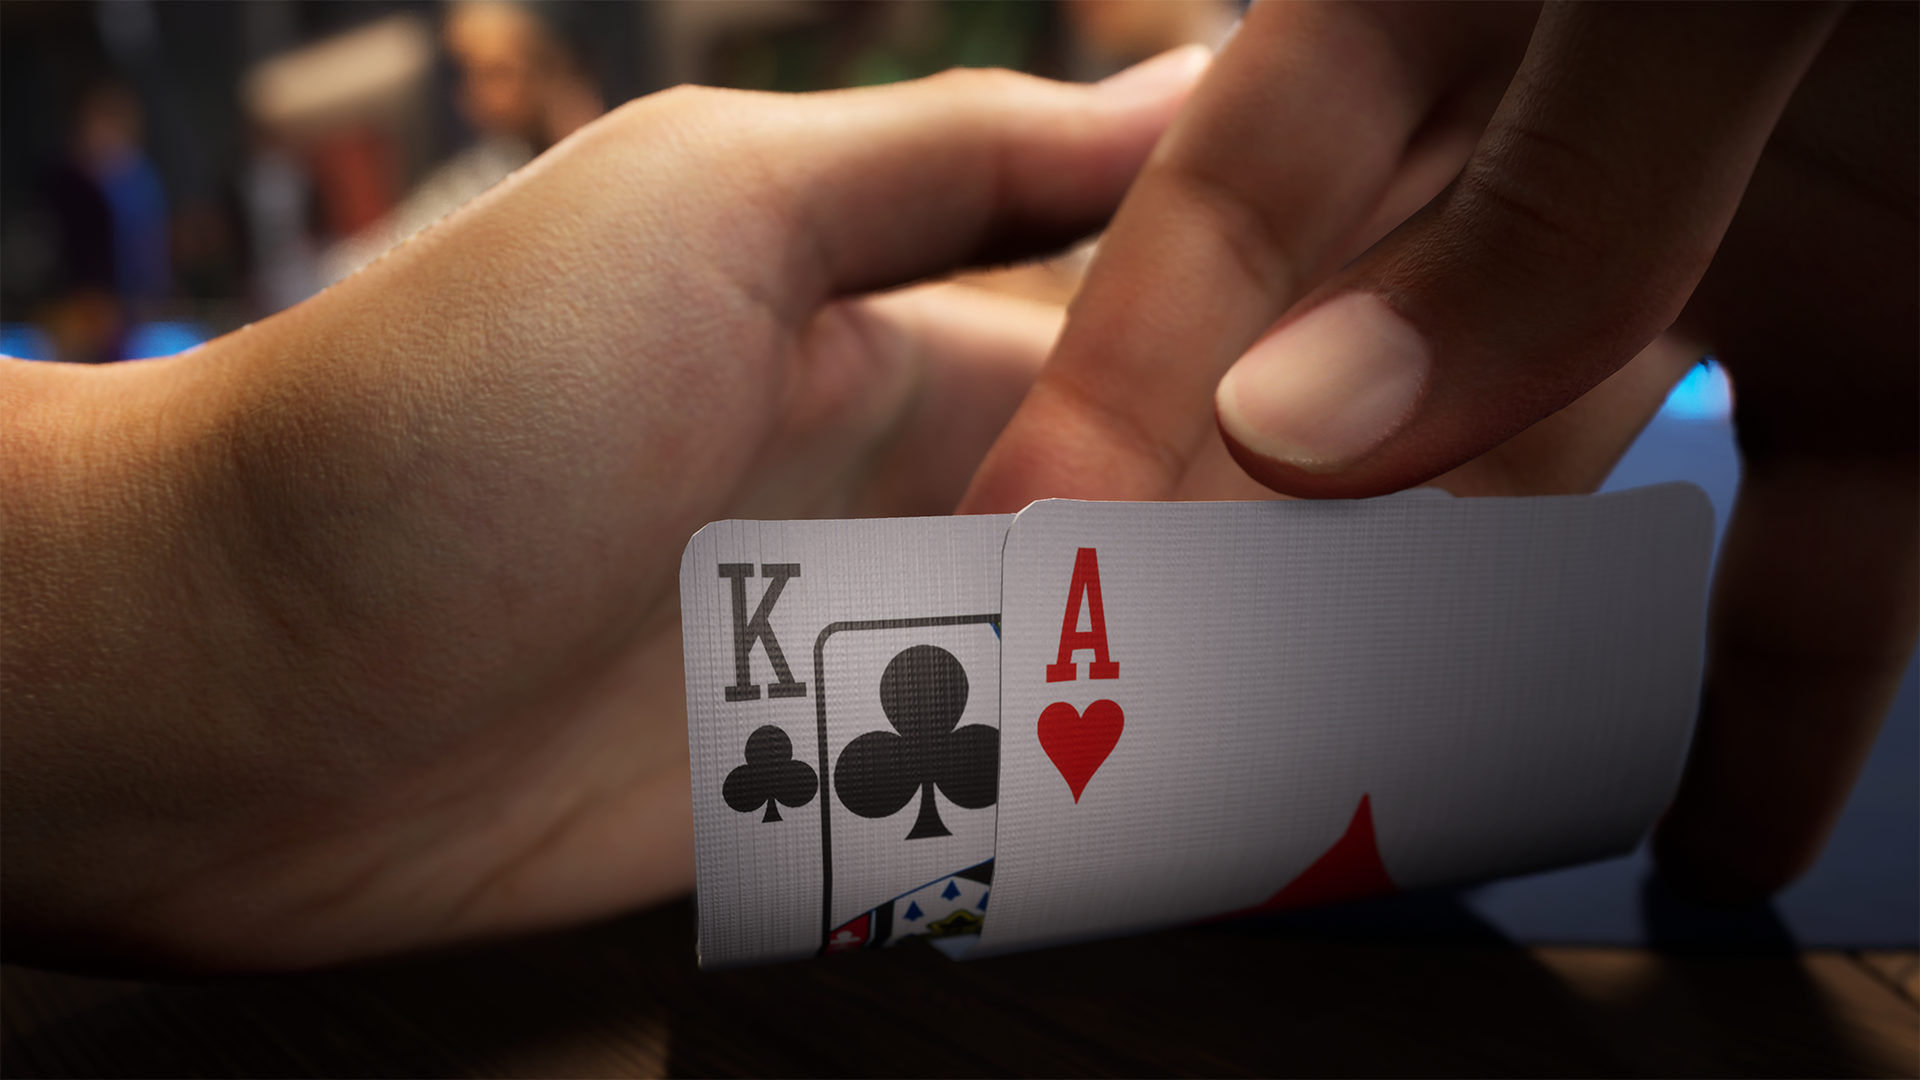 Ripstone's Poker Club gets priced and reveals new gameplay video.